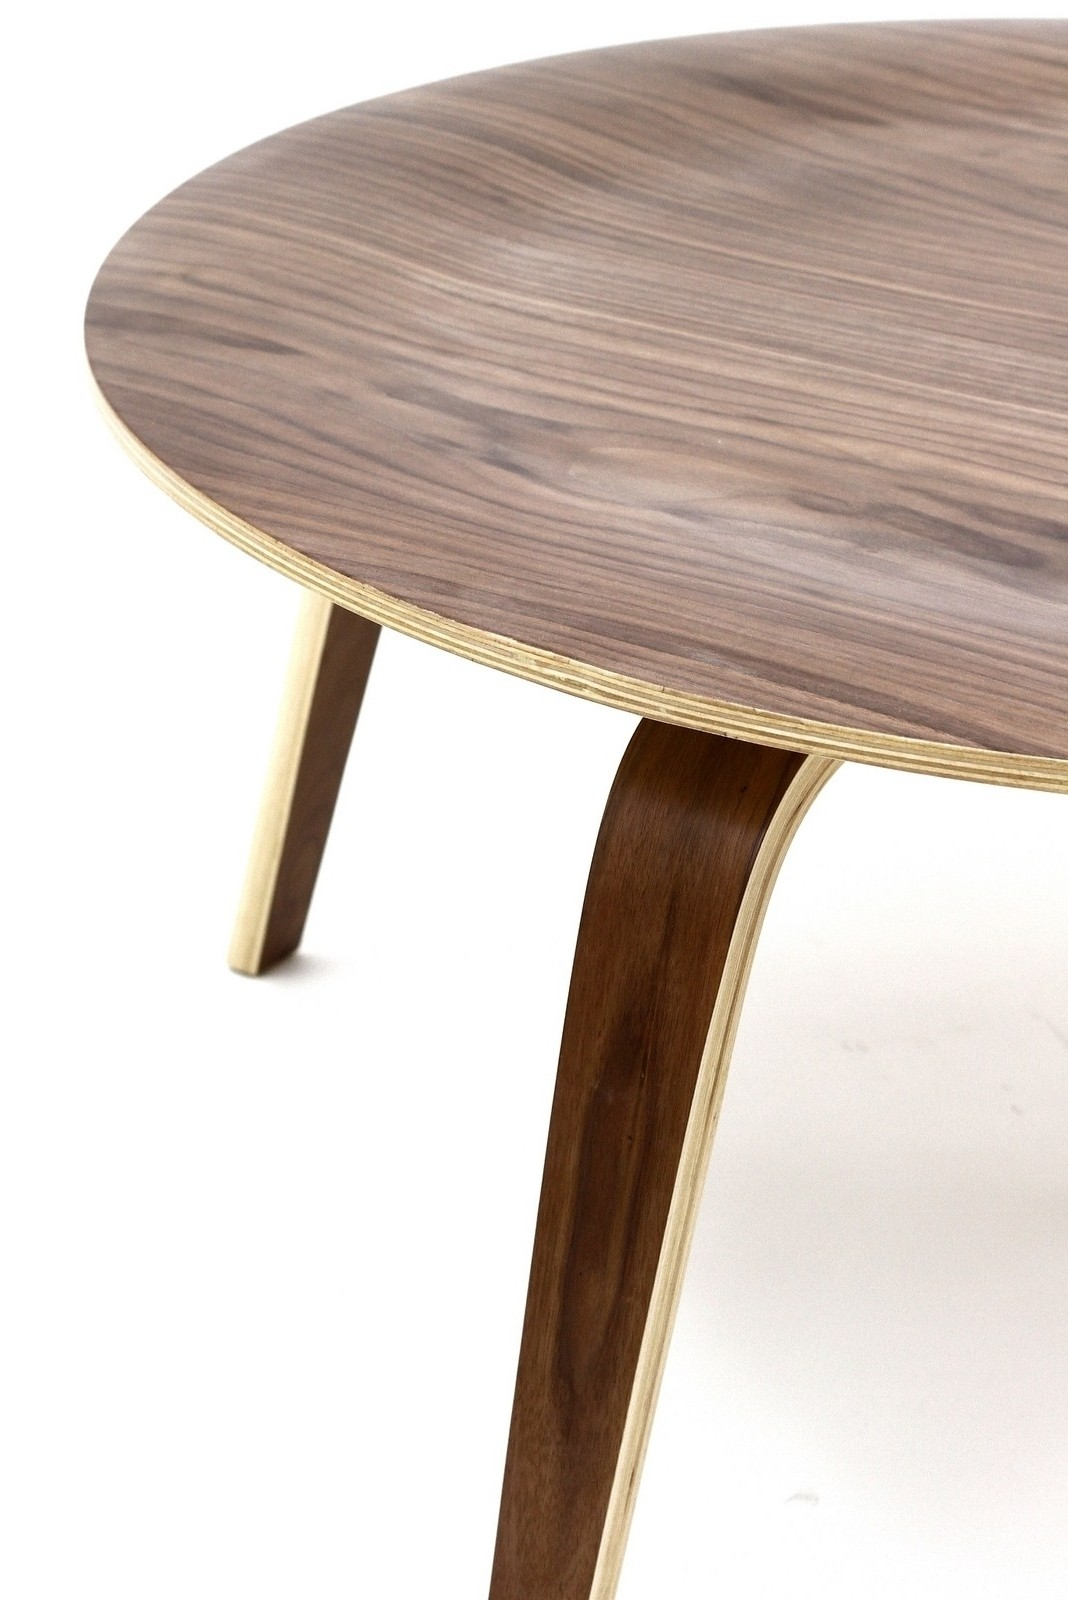 Plywood Coffee Table In Walnut From Renegade Eei 509 Coleman Furniture